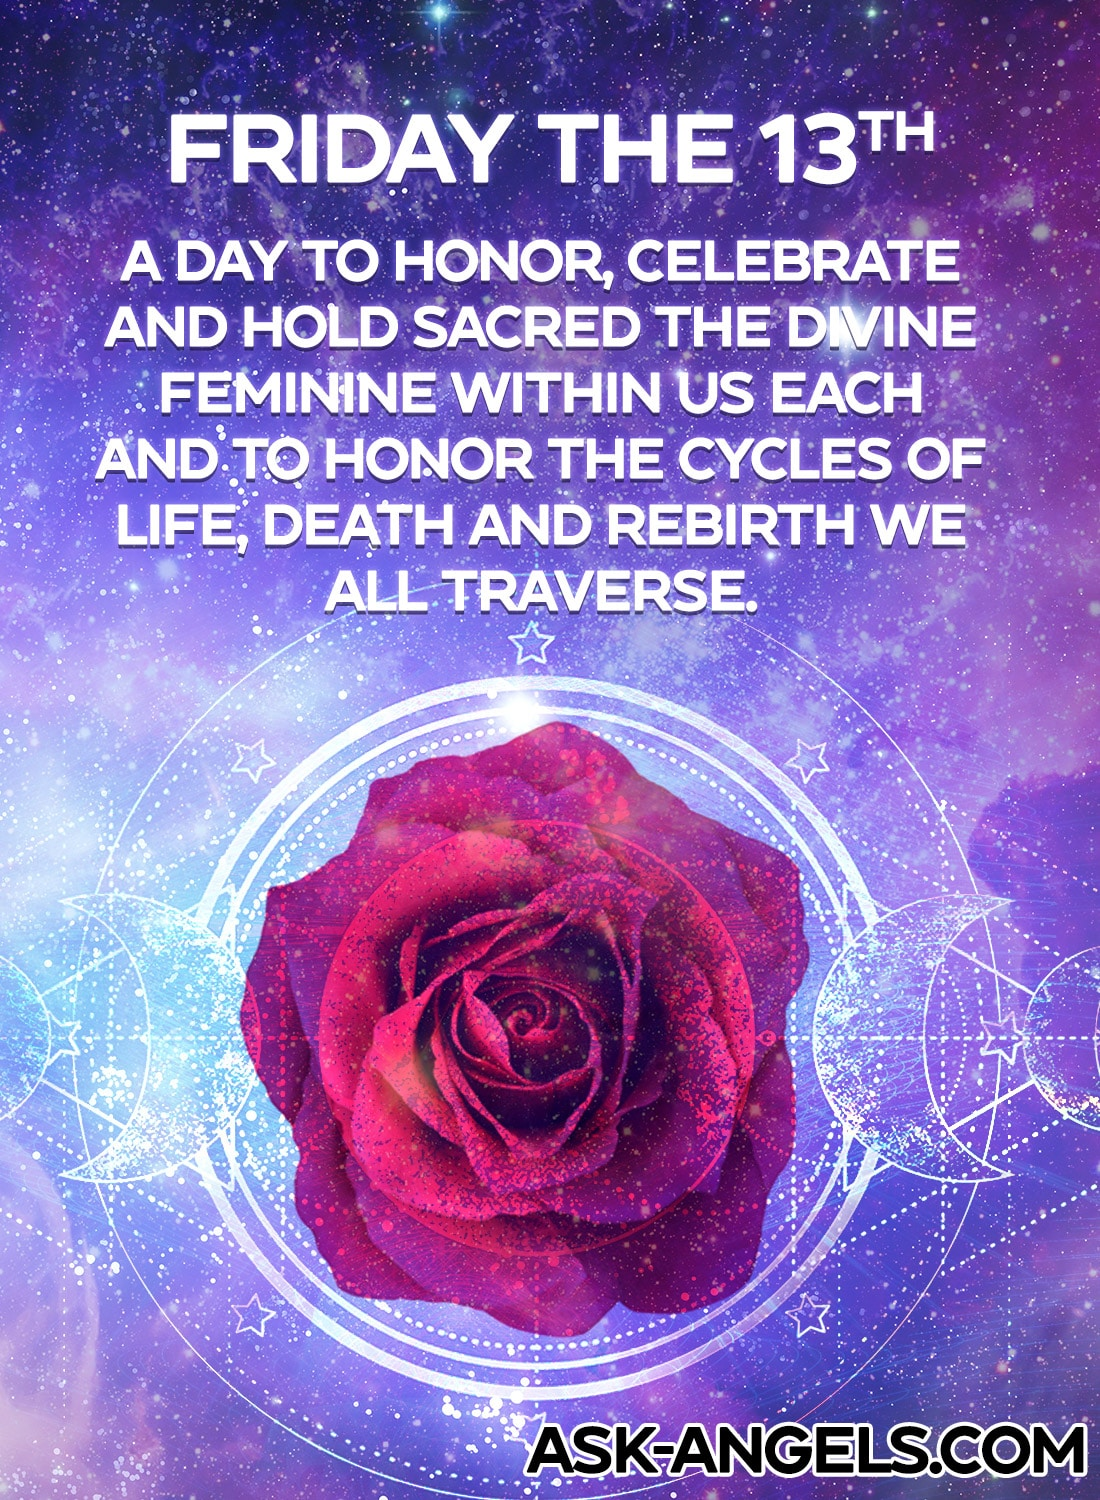 Friday the 13th and the Divine Feminine